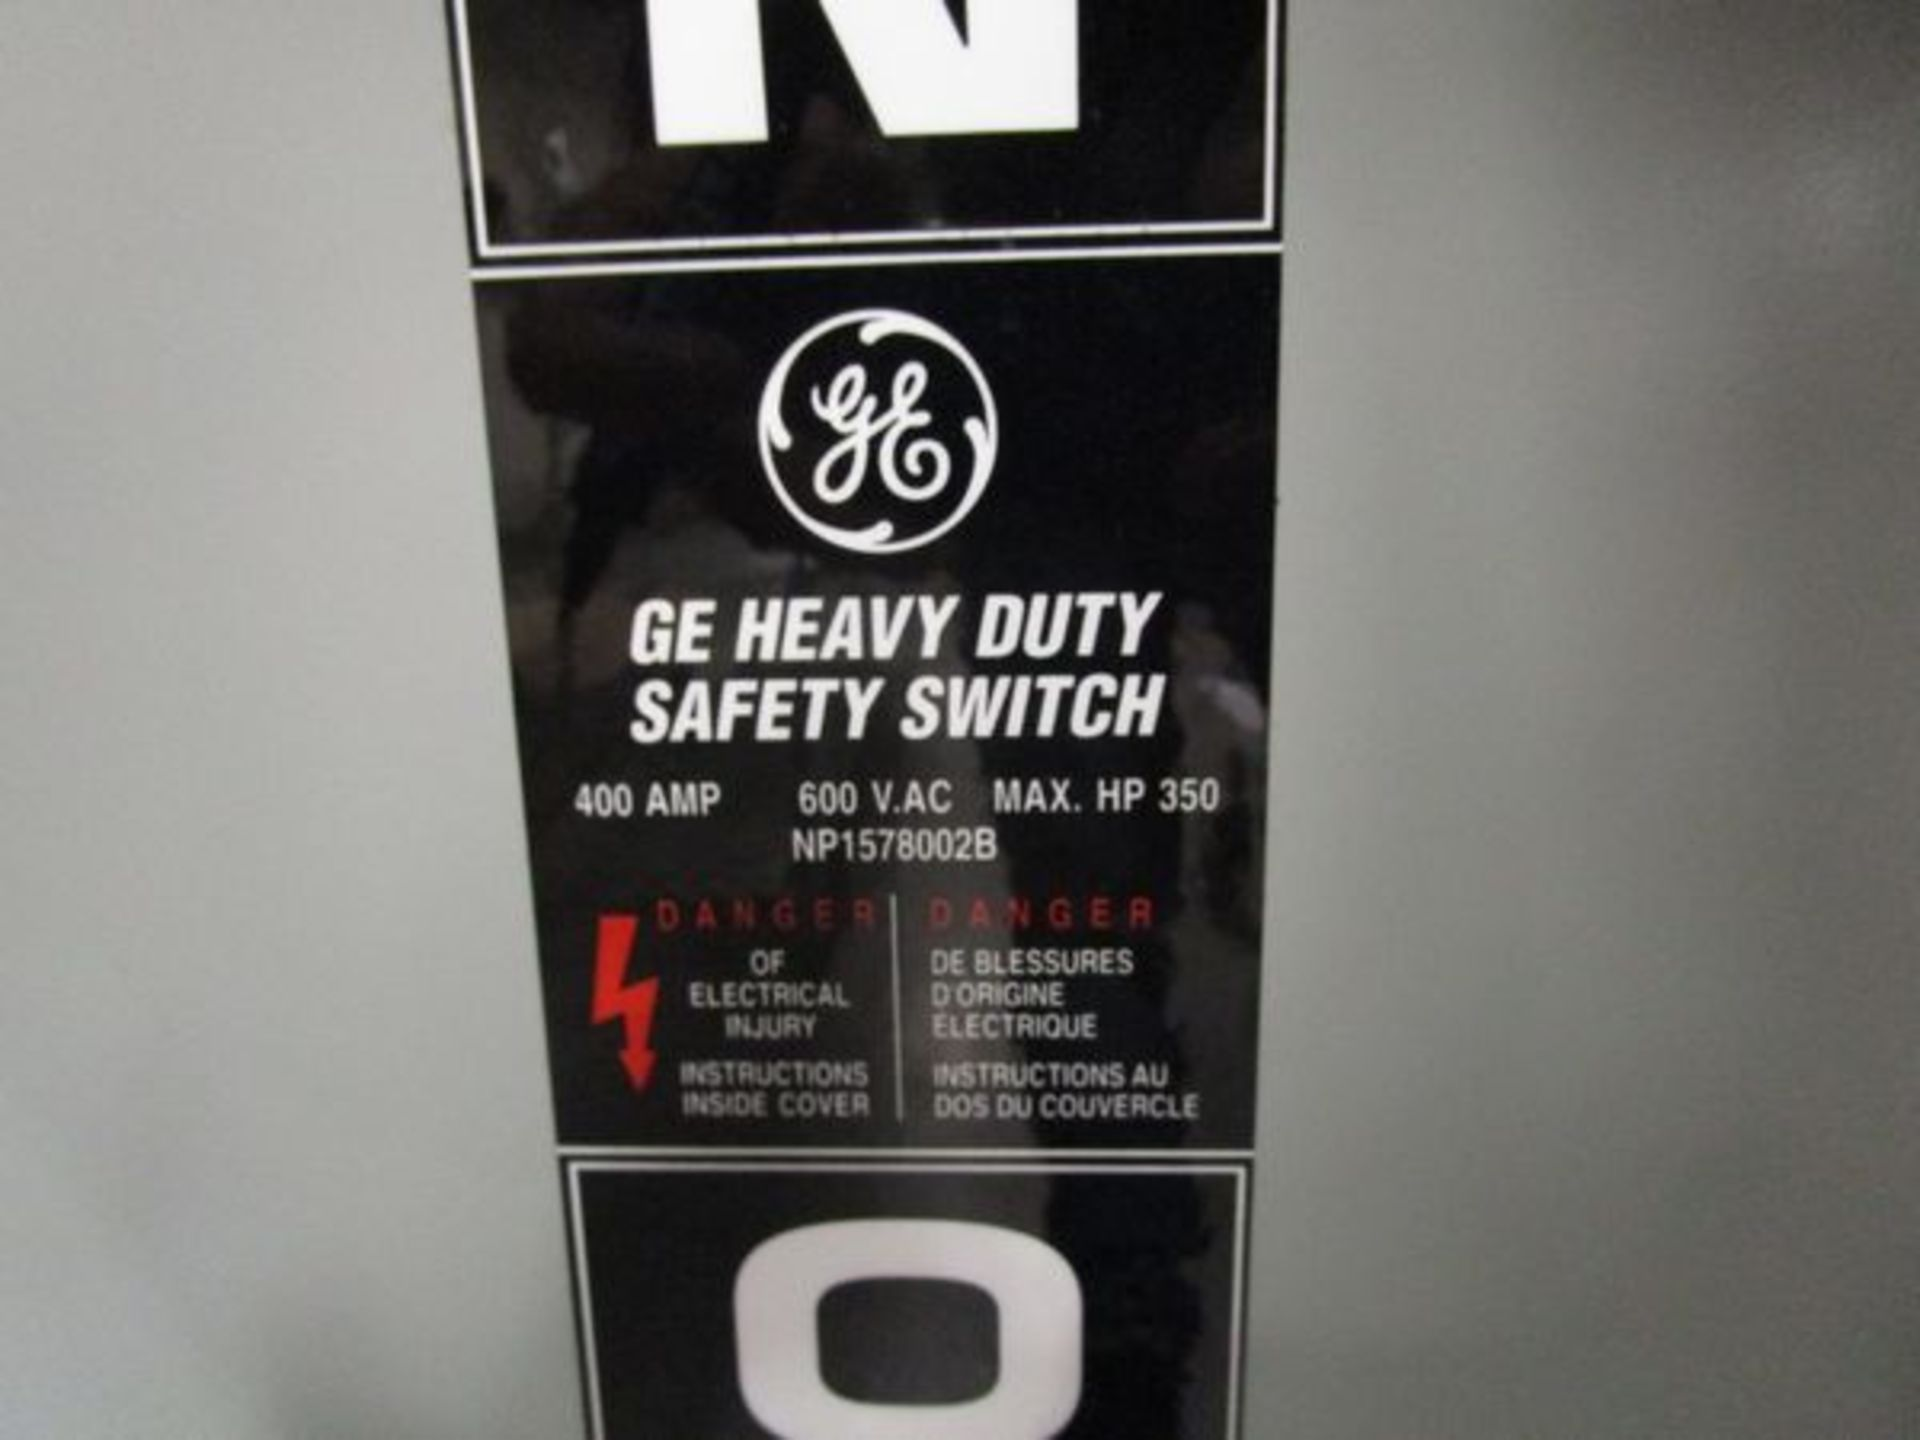 Lot GE HD Safety Switch, Acme T-252703-1 Autotransformer, Acme T-2A-52717-1 Transformer - Image 3 of 6